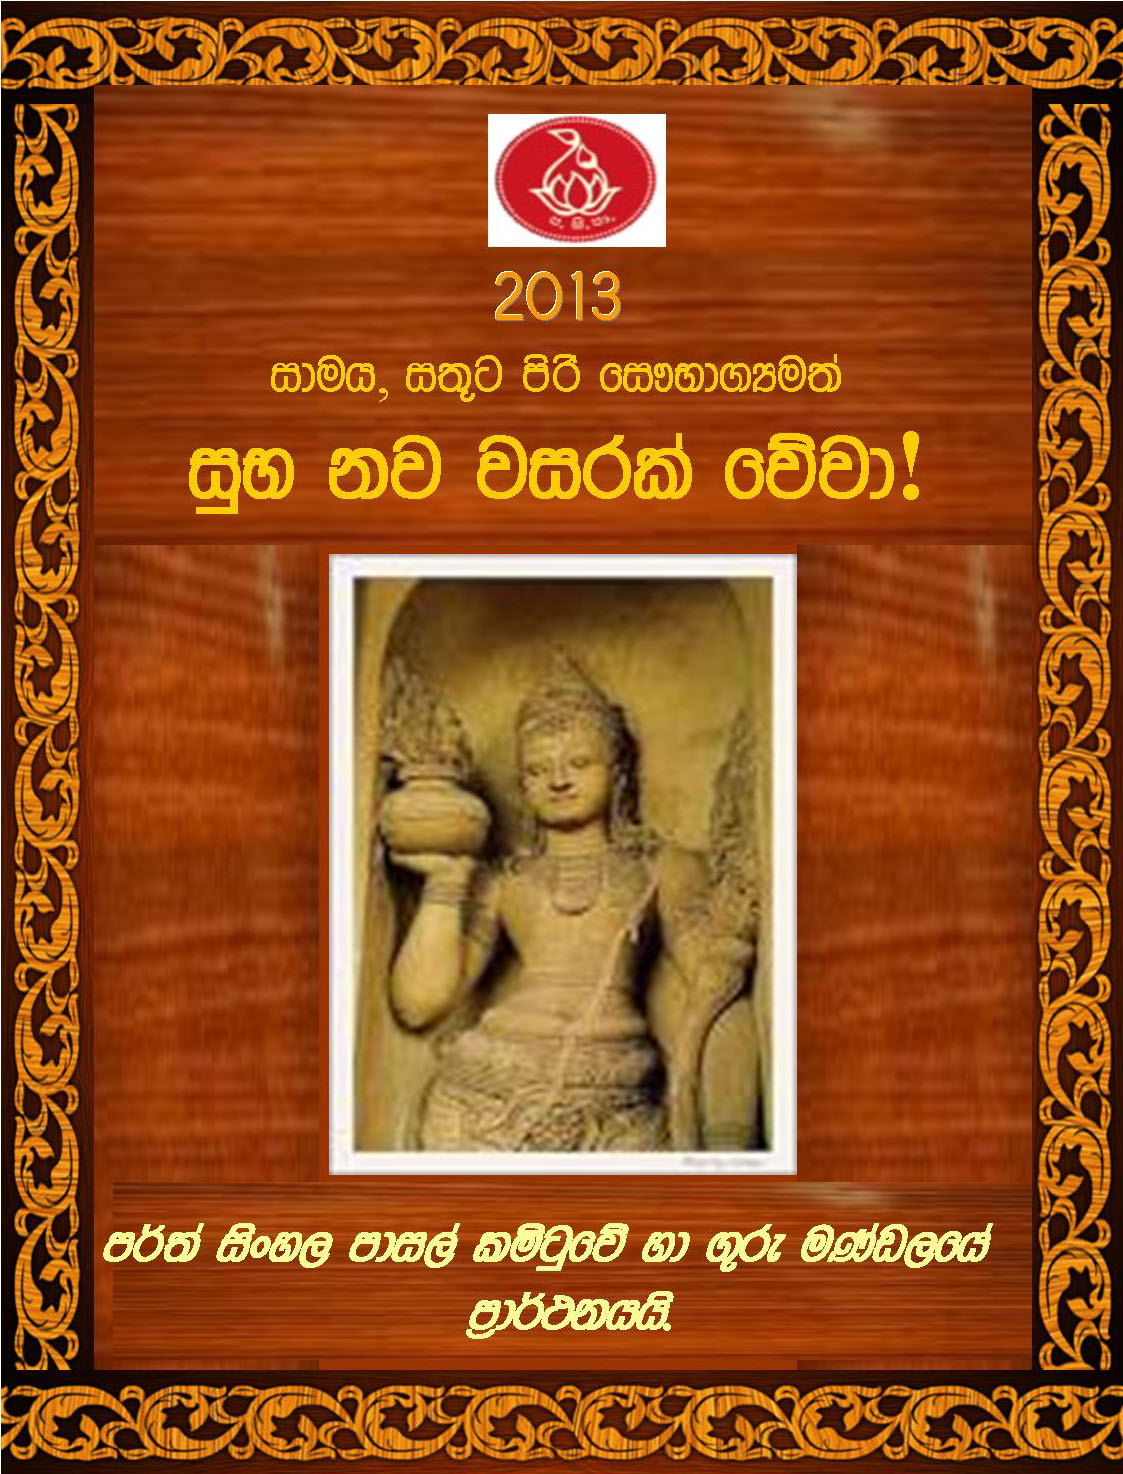 Perth Sinhala School News Blog New Year Wishes From The Committee